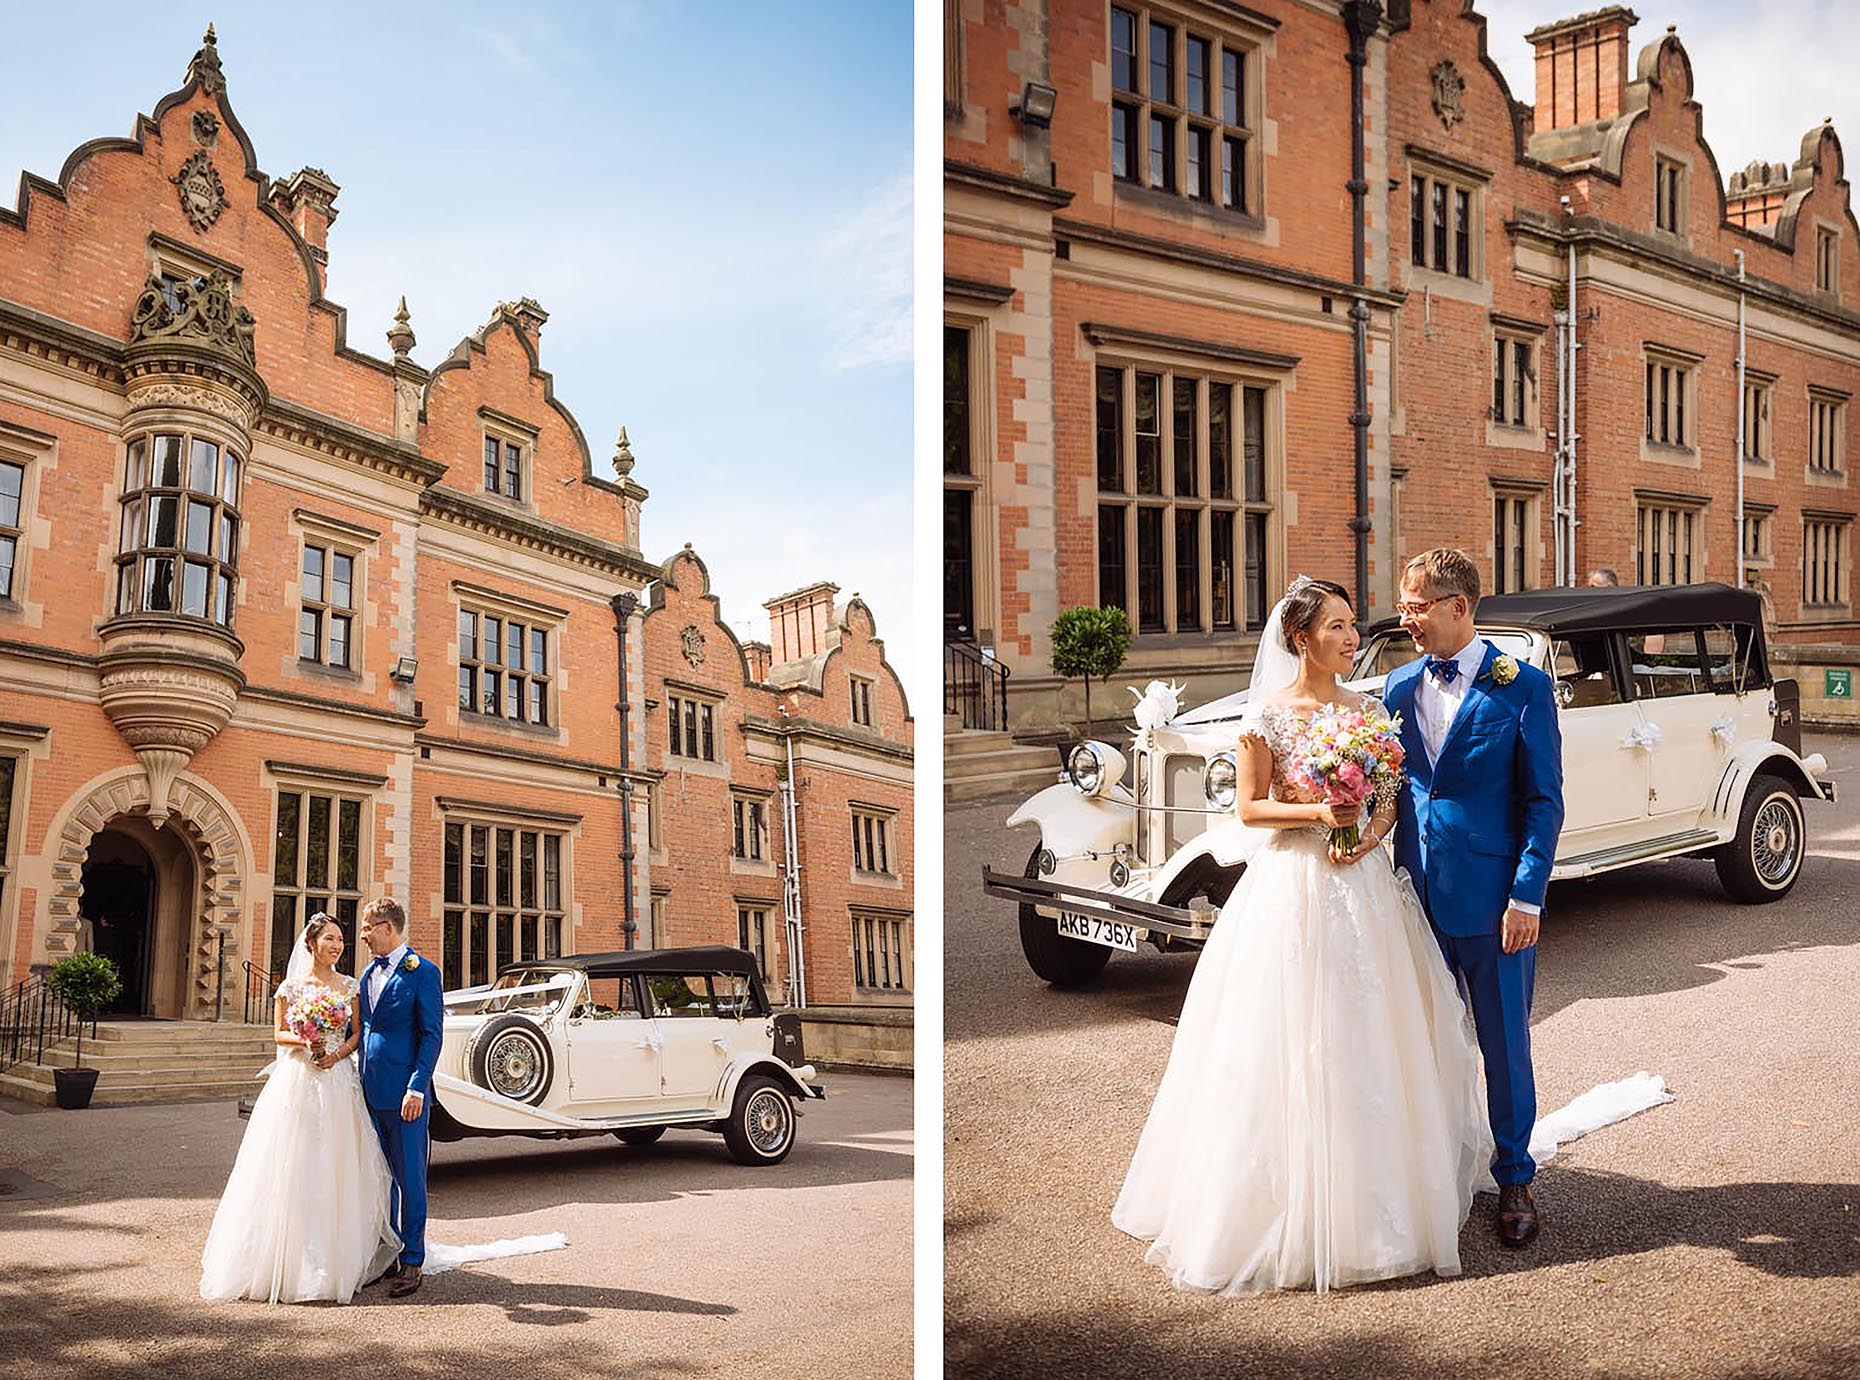 chay-felix-facade-beaumanor-hall-wedding-photography-18